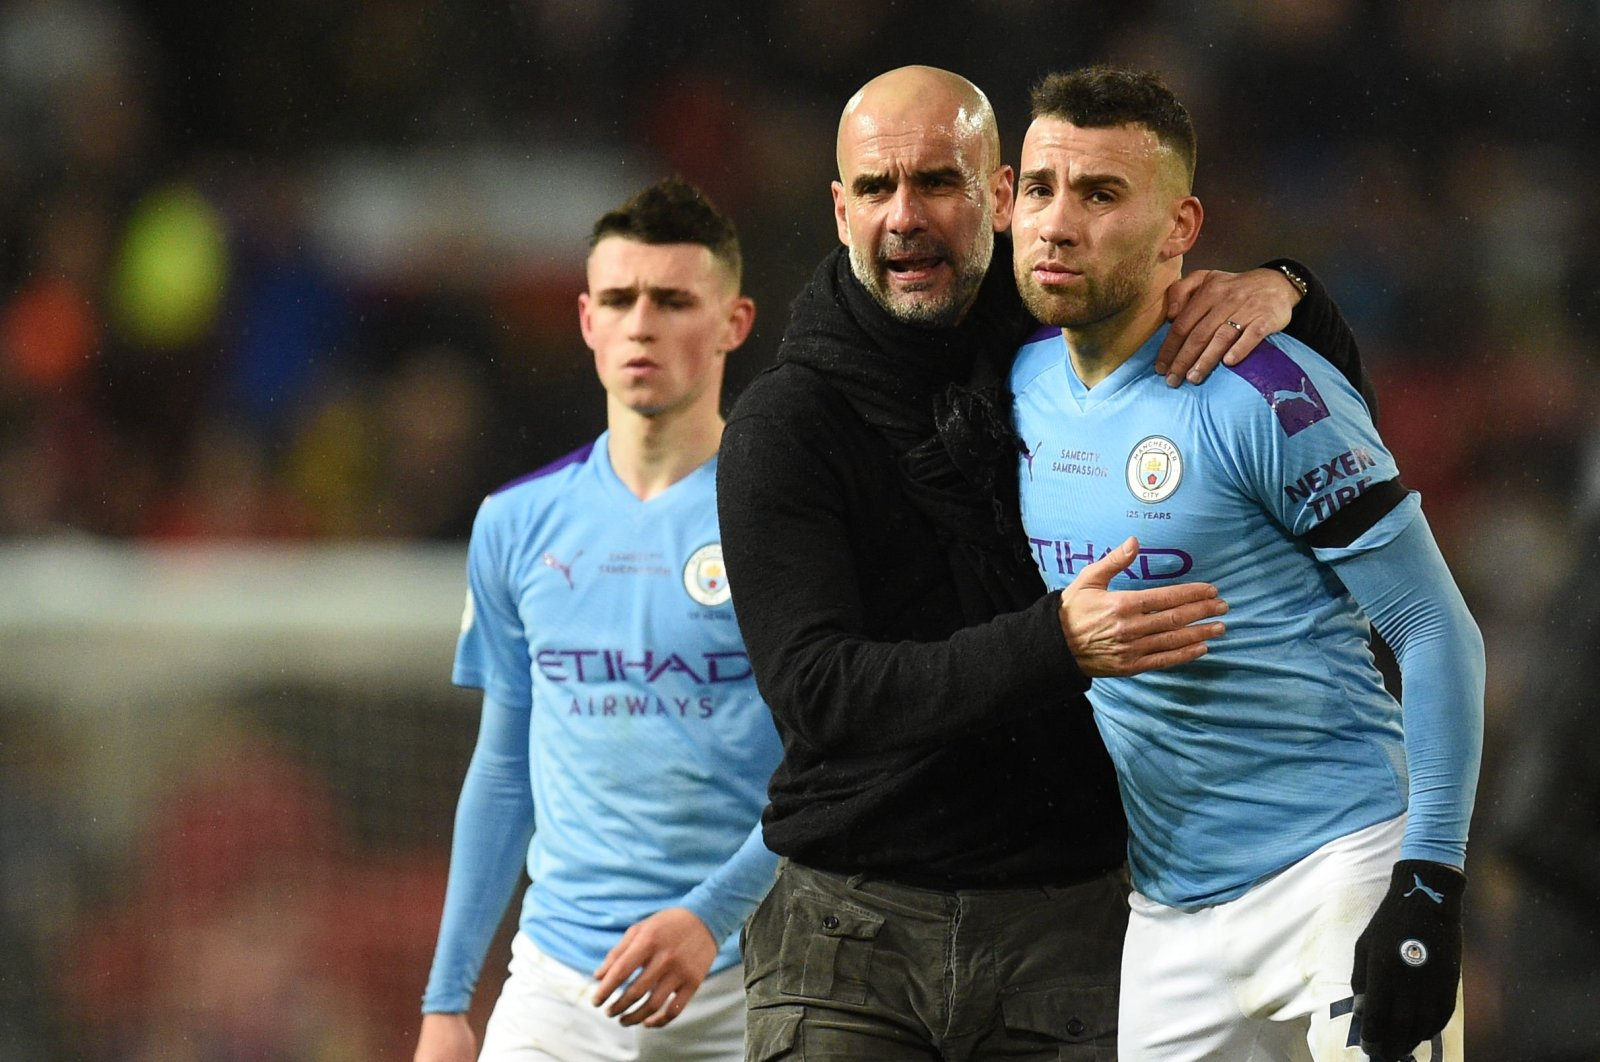 Manchester City's Phil Foden (L), Manager Pep Guardiola (C) and Nicolas Otamendi (R) react after losing to Manchester City, Manchester, England, March 8, 2020. (AFP Photo)